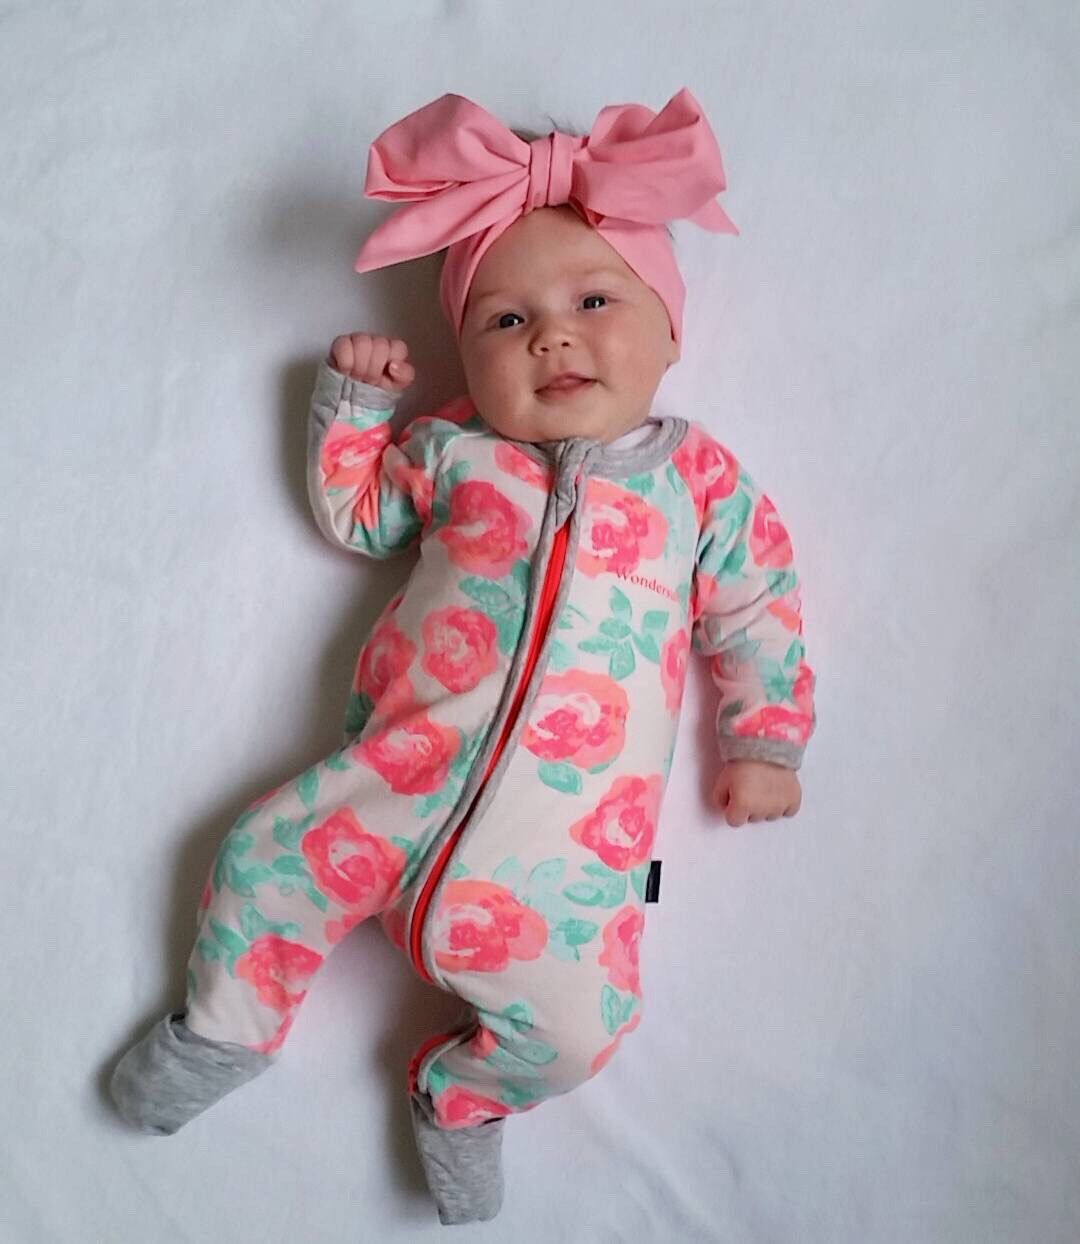 b206f042a456 Newborn Baby Rose One Piece Outfit Winter Fall Long Sleeve Romper ...